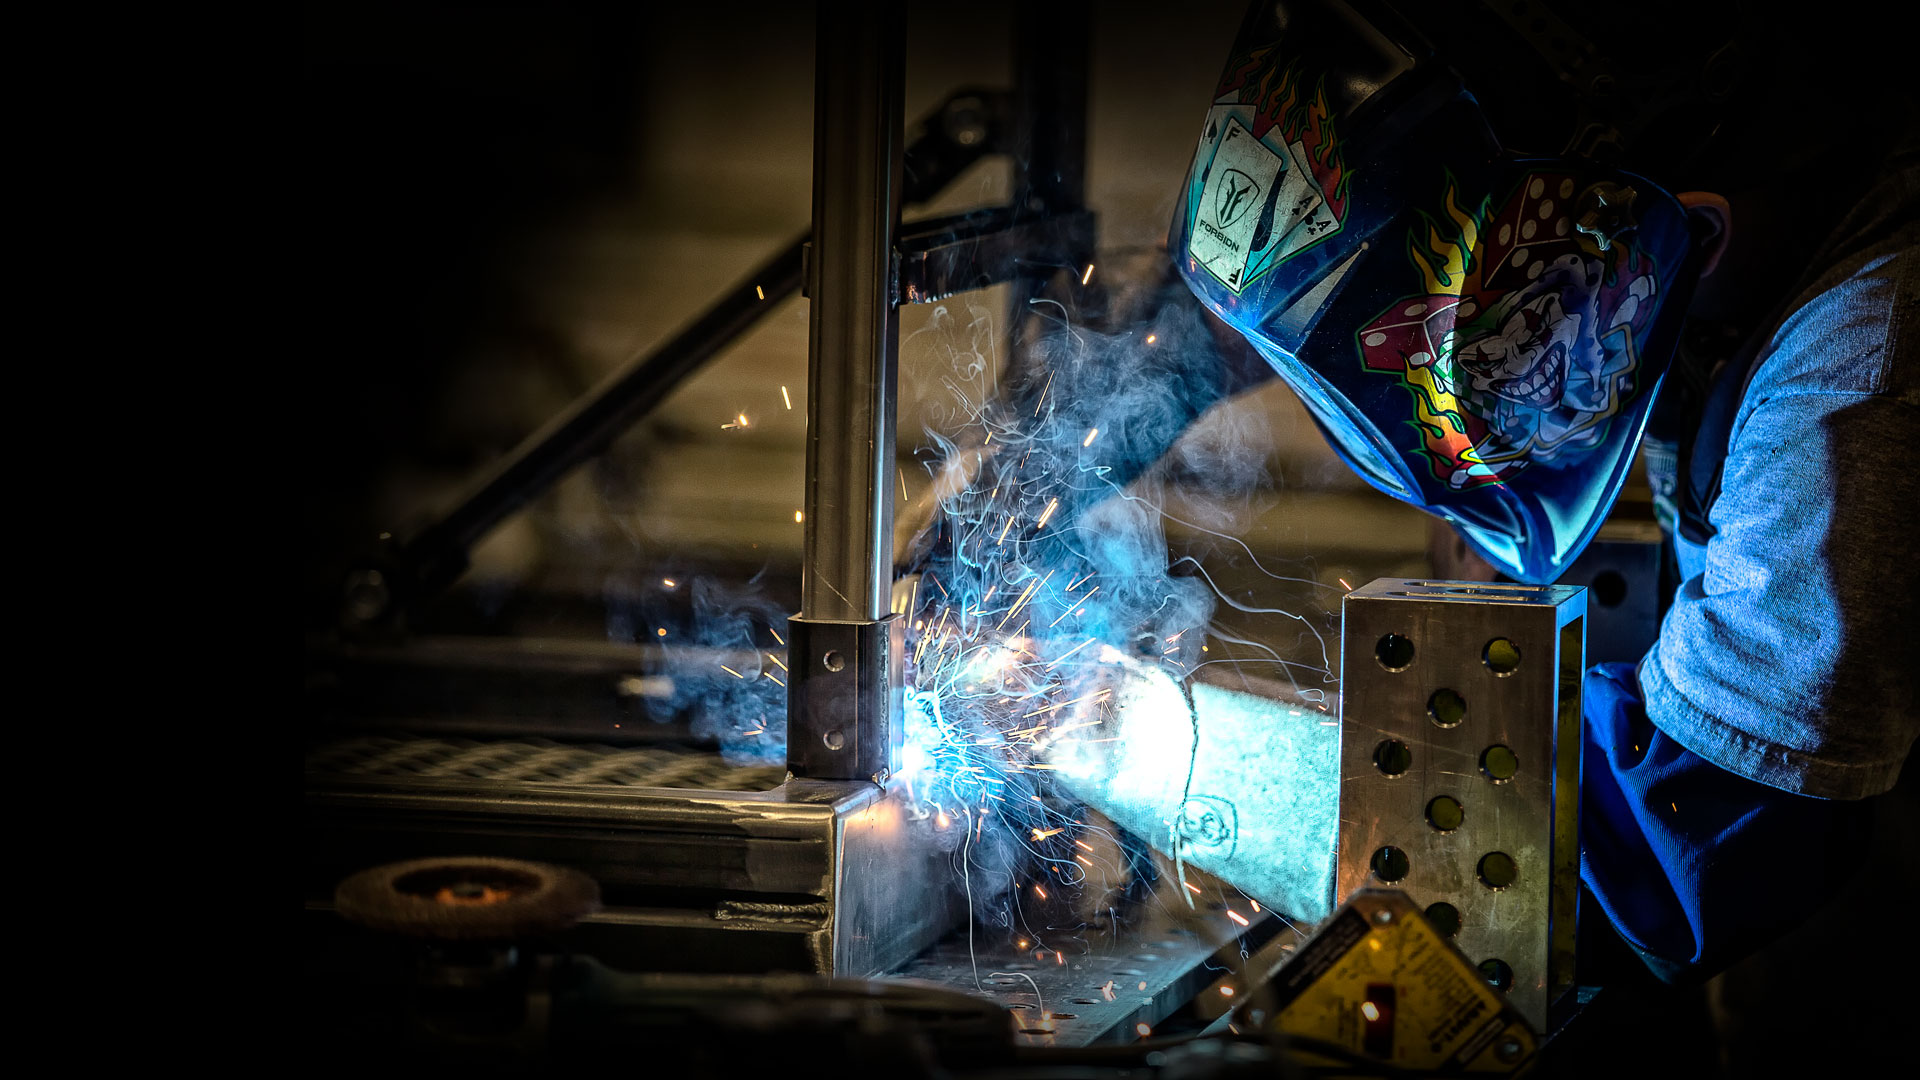 How to Weld Aluminum with an ARC Welder